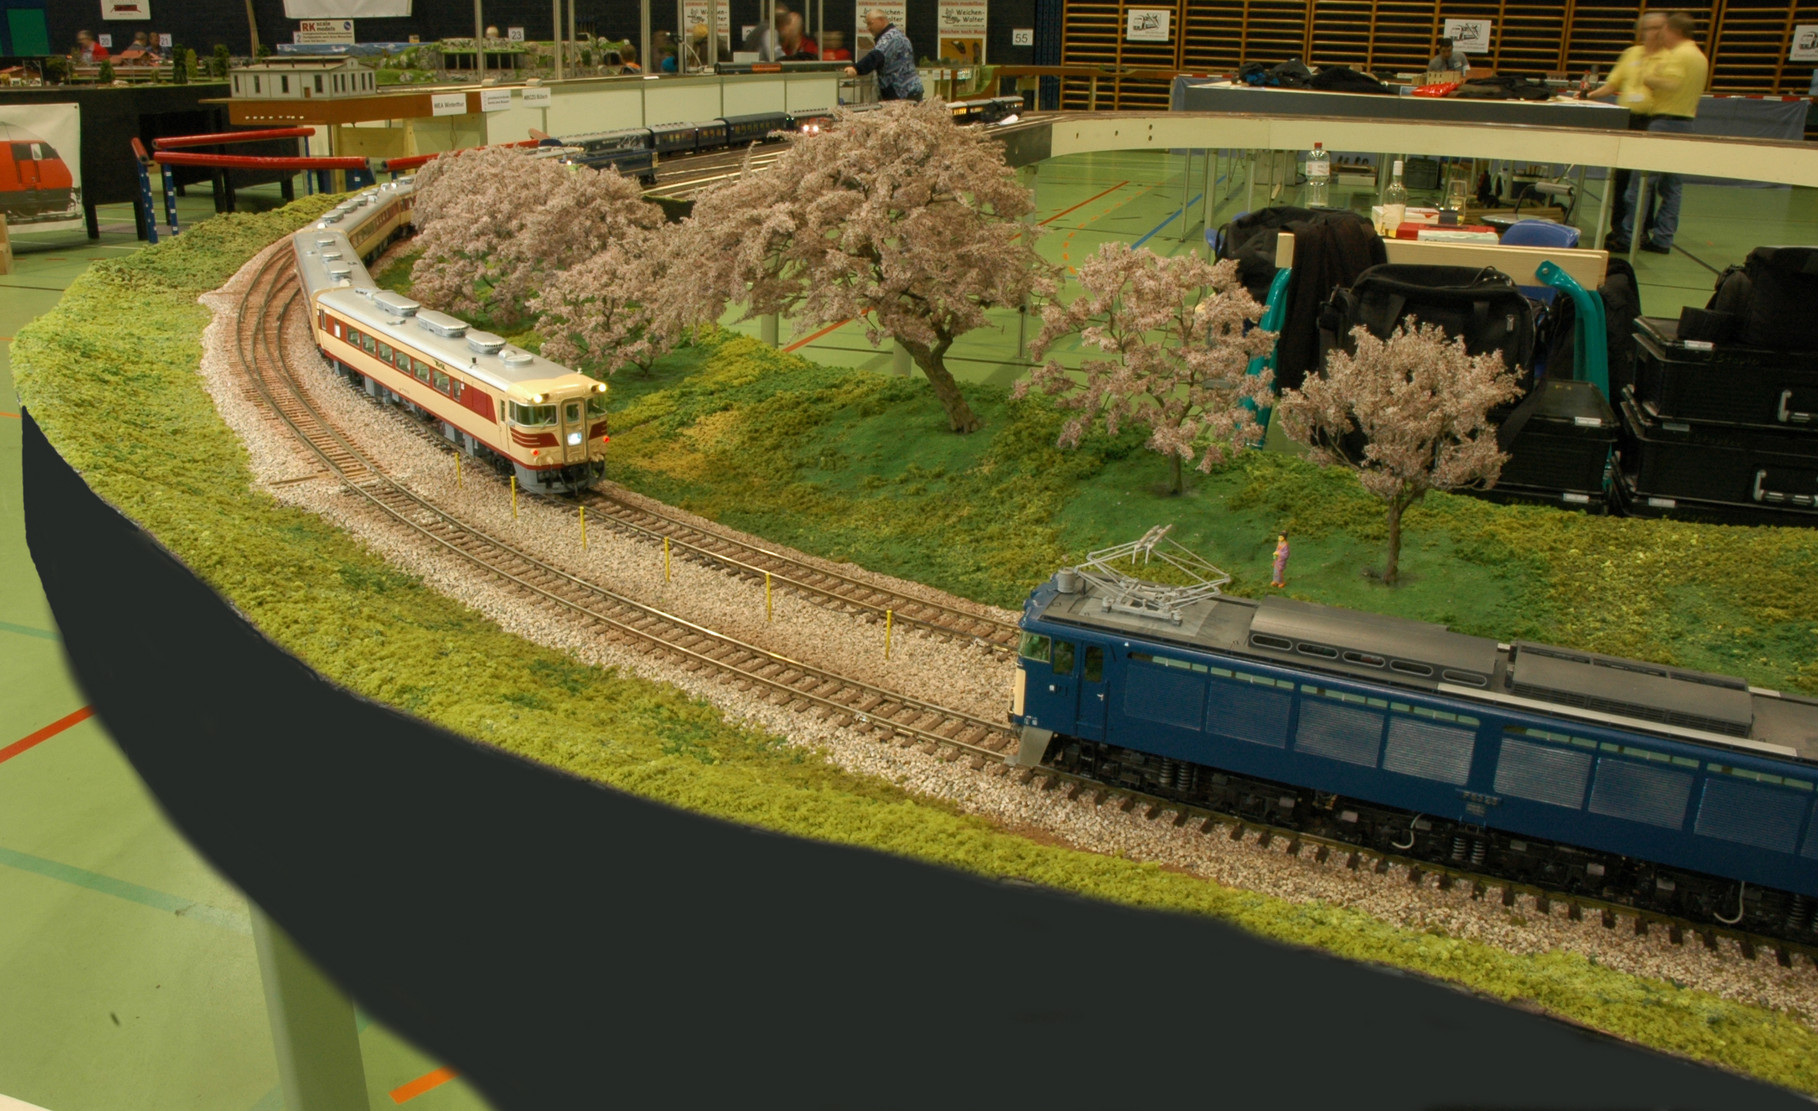 Kiha 82 + EF-63 under the cherry blossom trees. Olten 2013